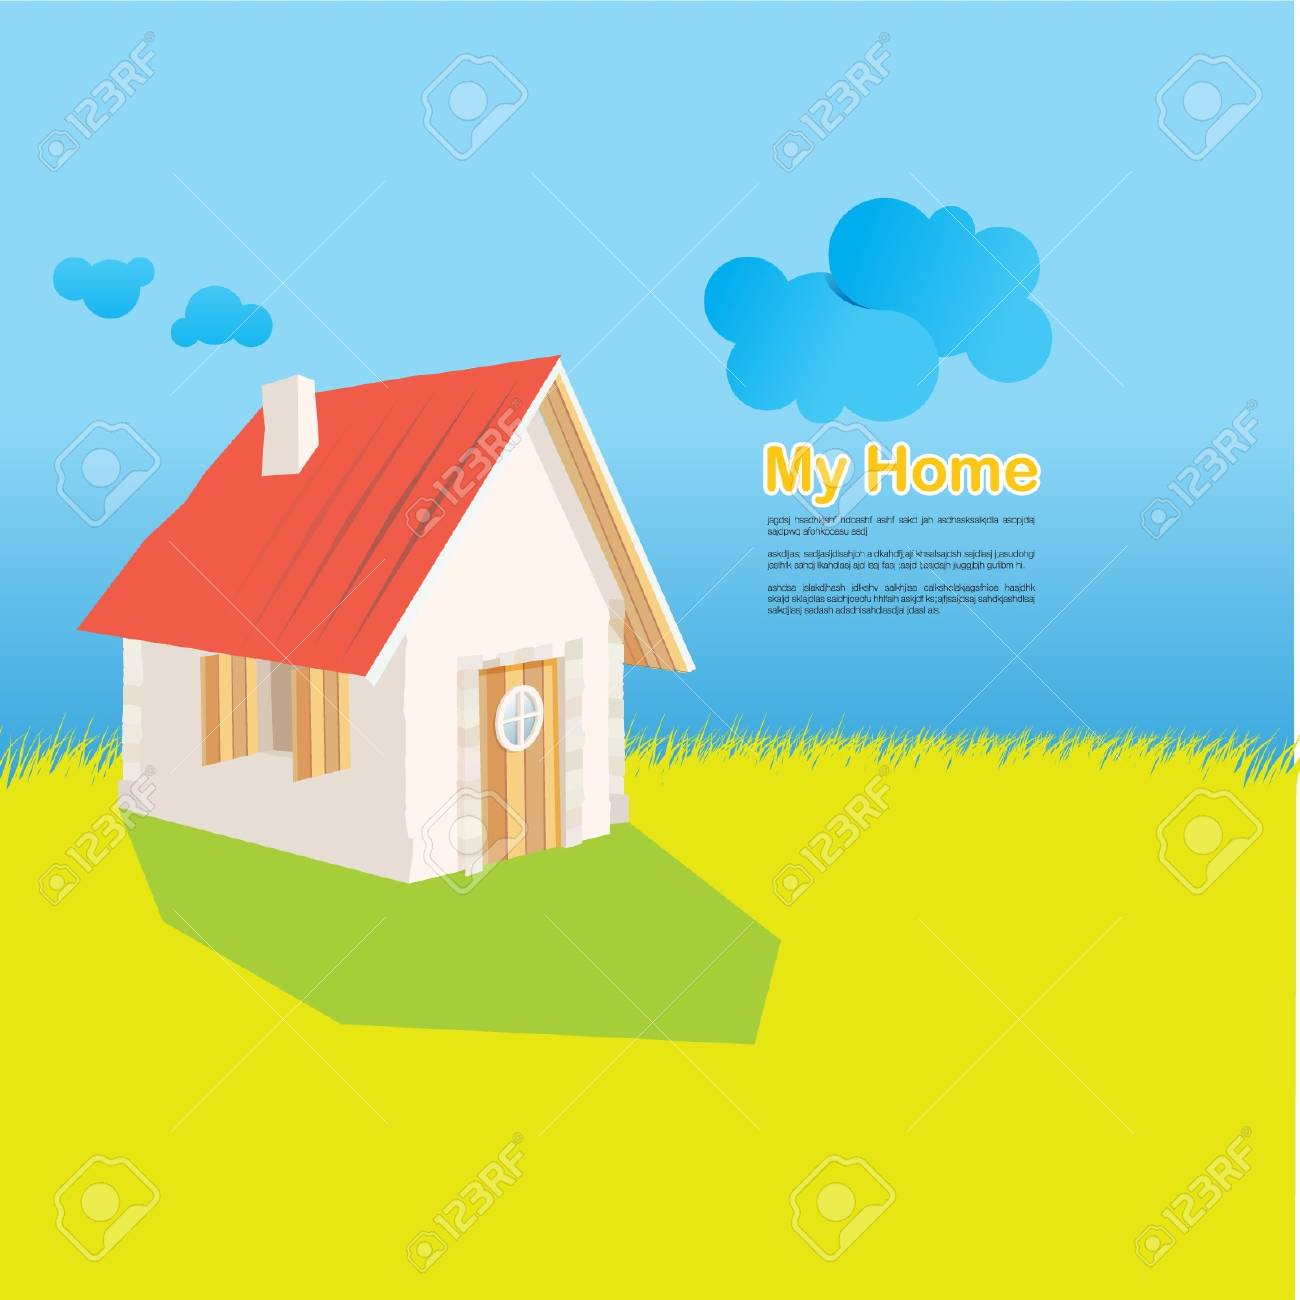 The Cottage Stock Vector - 16324373